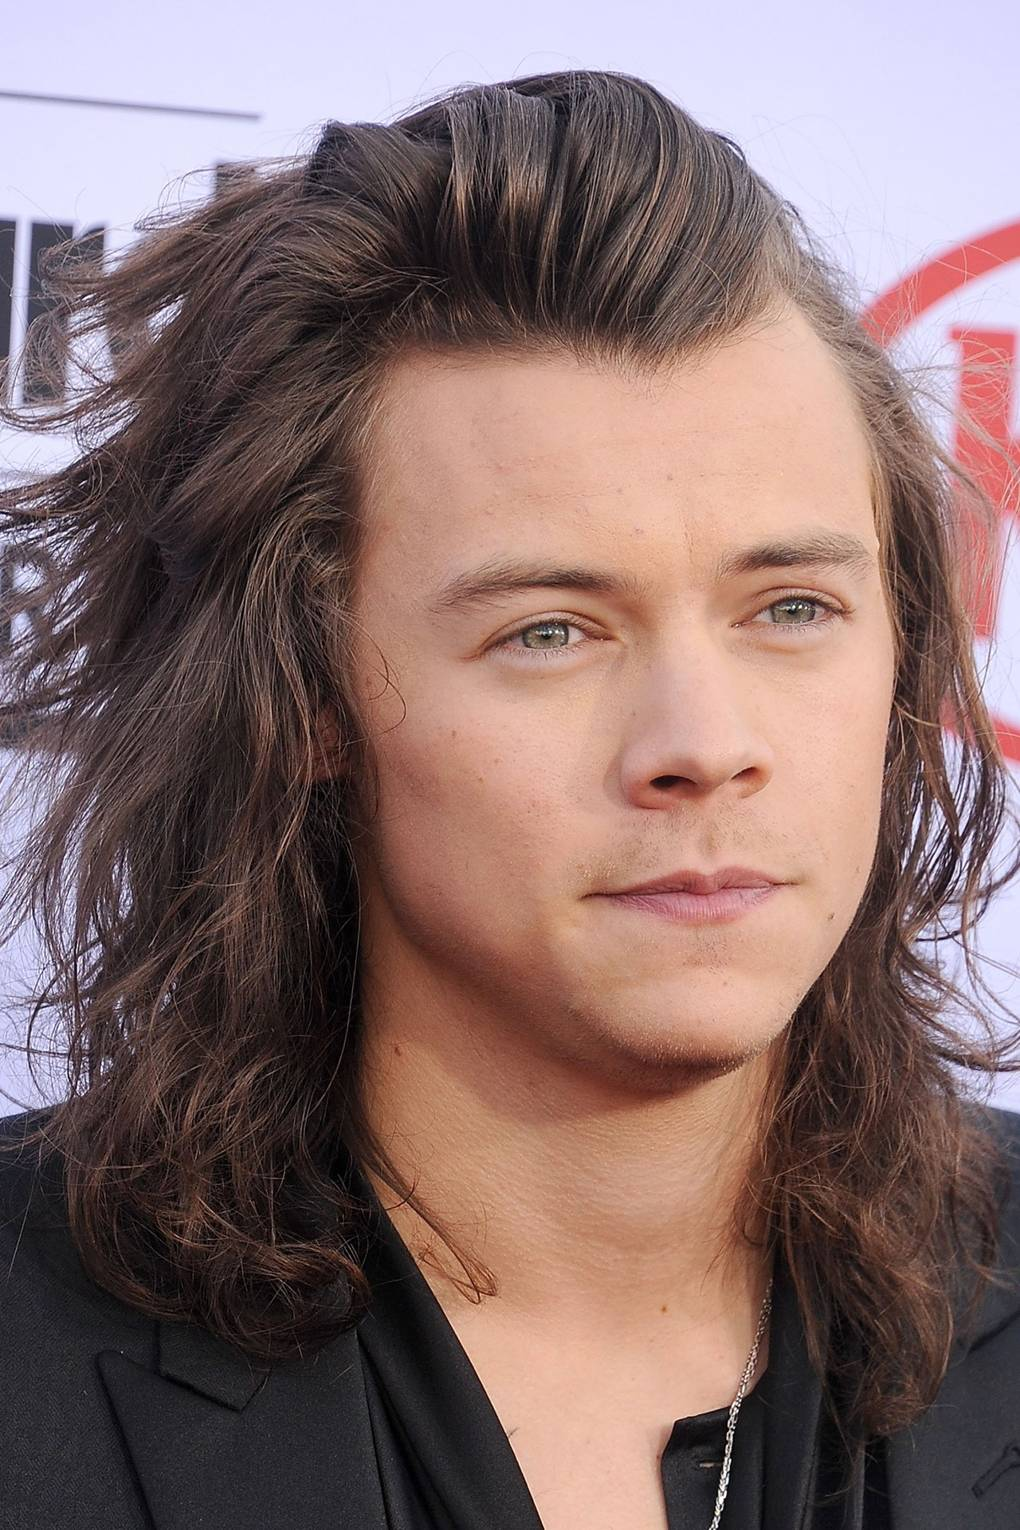 Harry Styles Hair Cut From Long To Short For Charity Glamour Uk